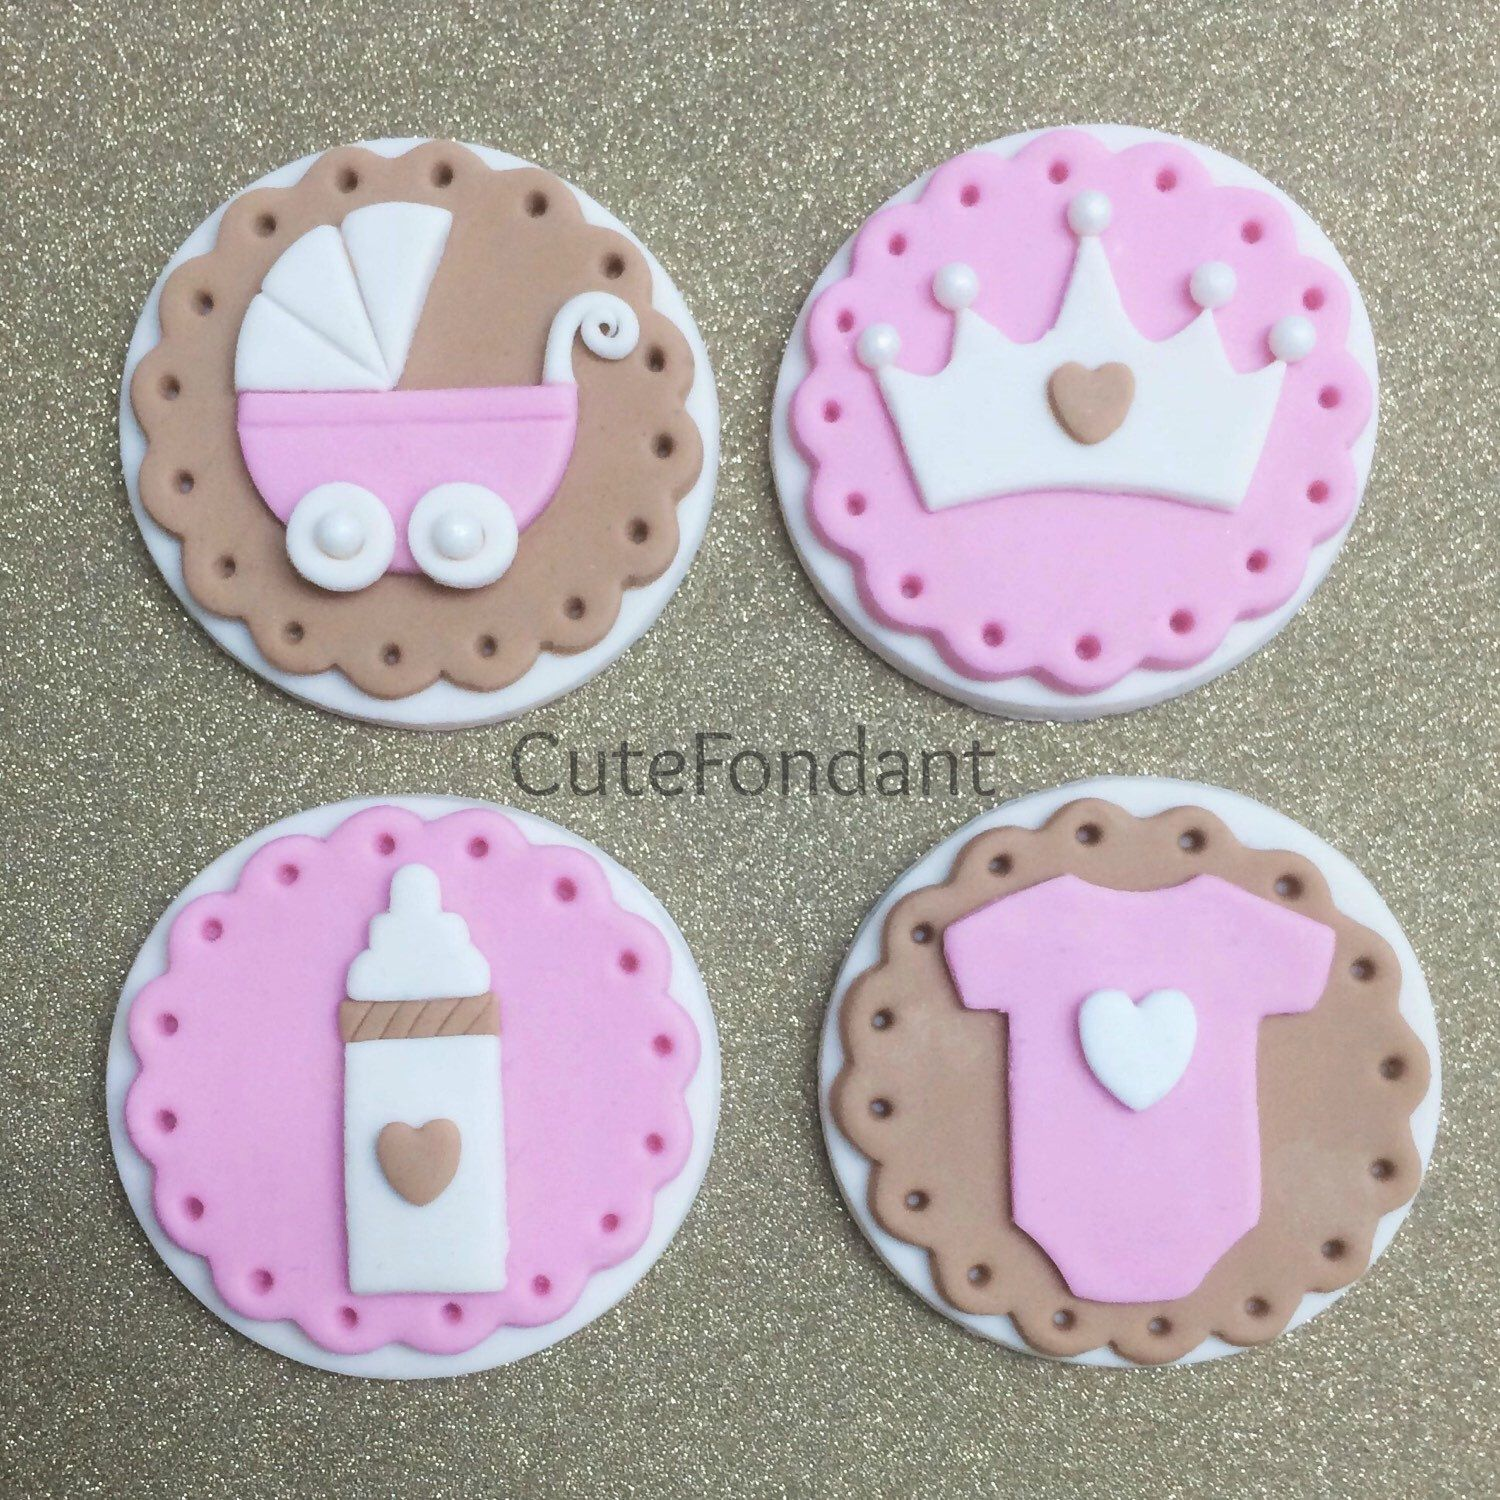 New Baby Girl Fondant Cupcake Toppers Baby Shower Things